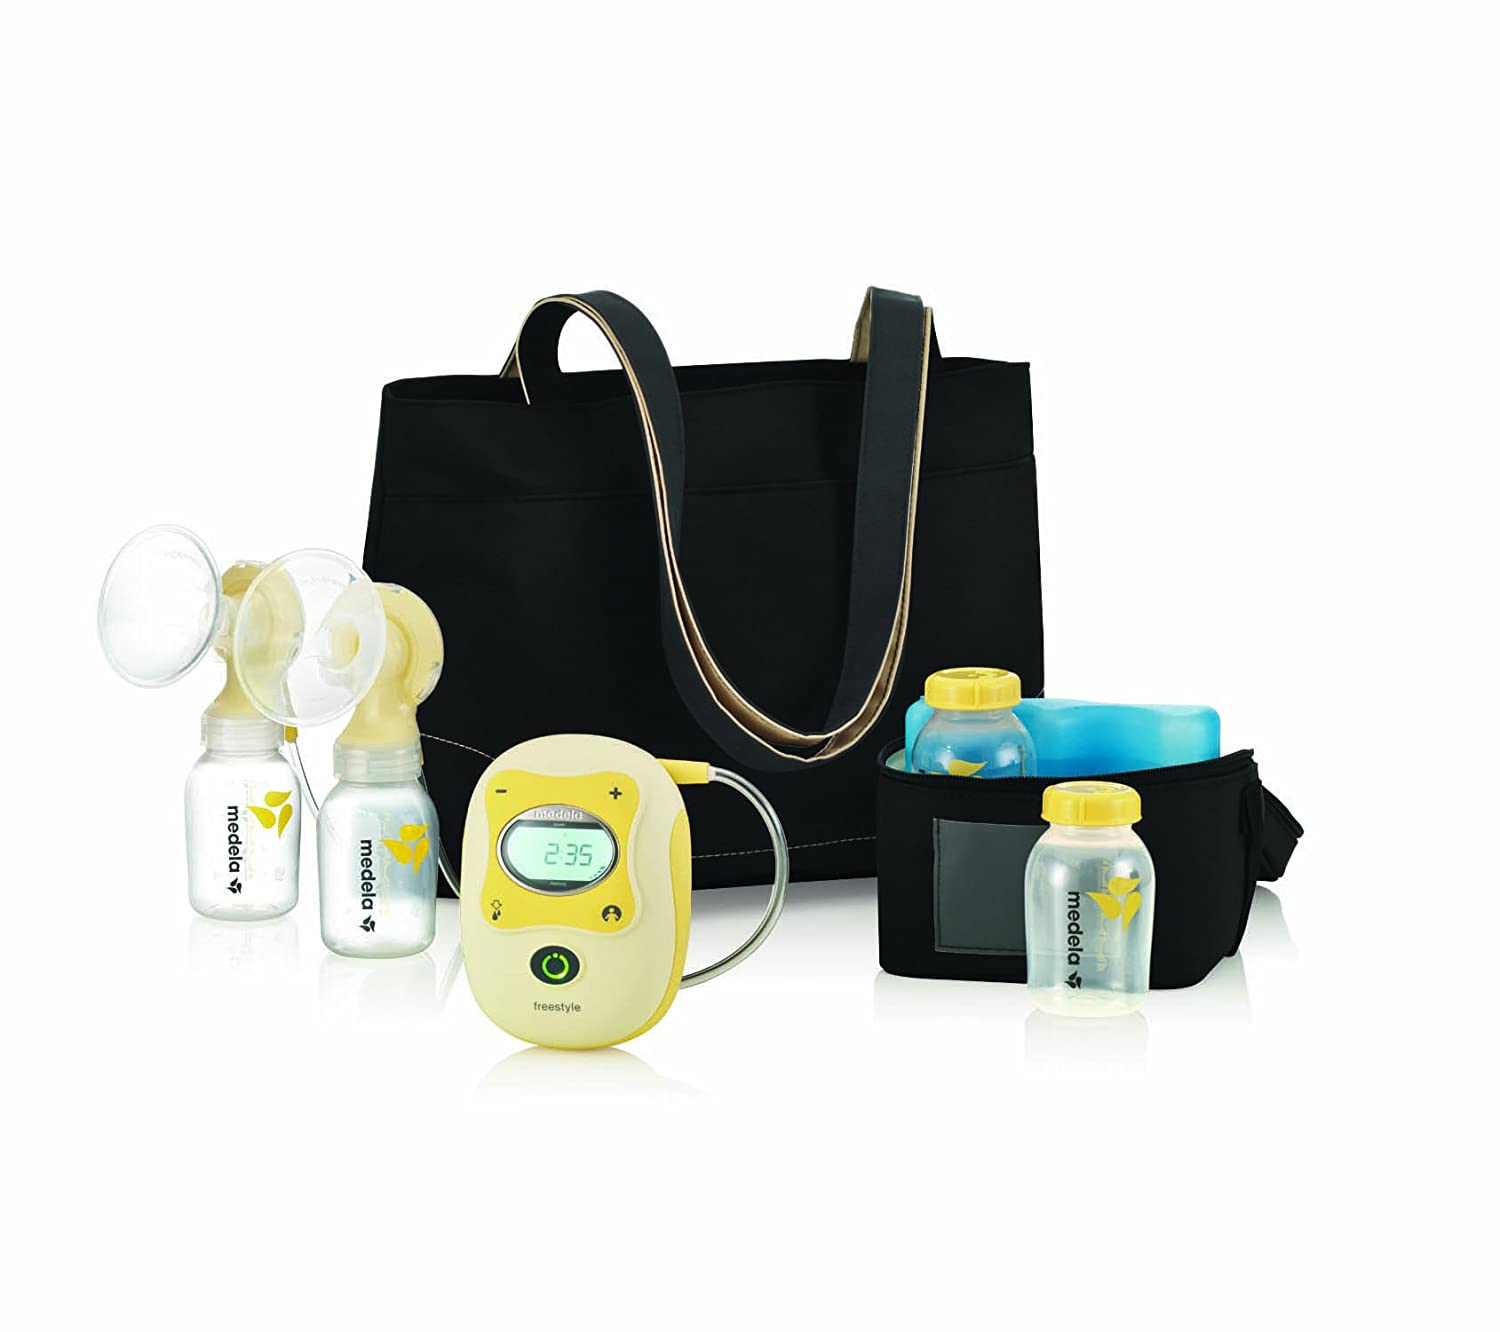 $250 (was $449.97) Medela Freestyle Double Electric Breast Pump